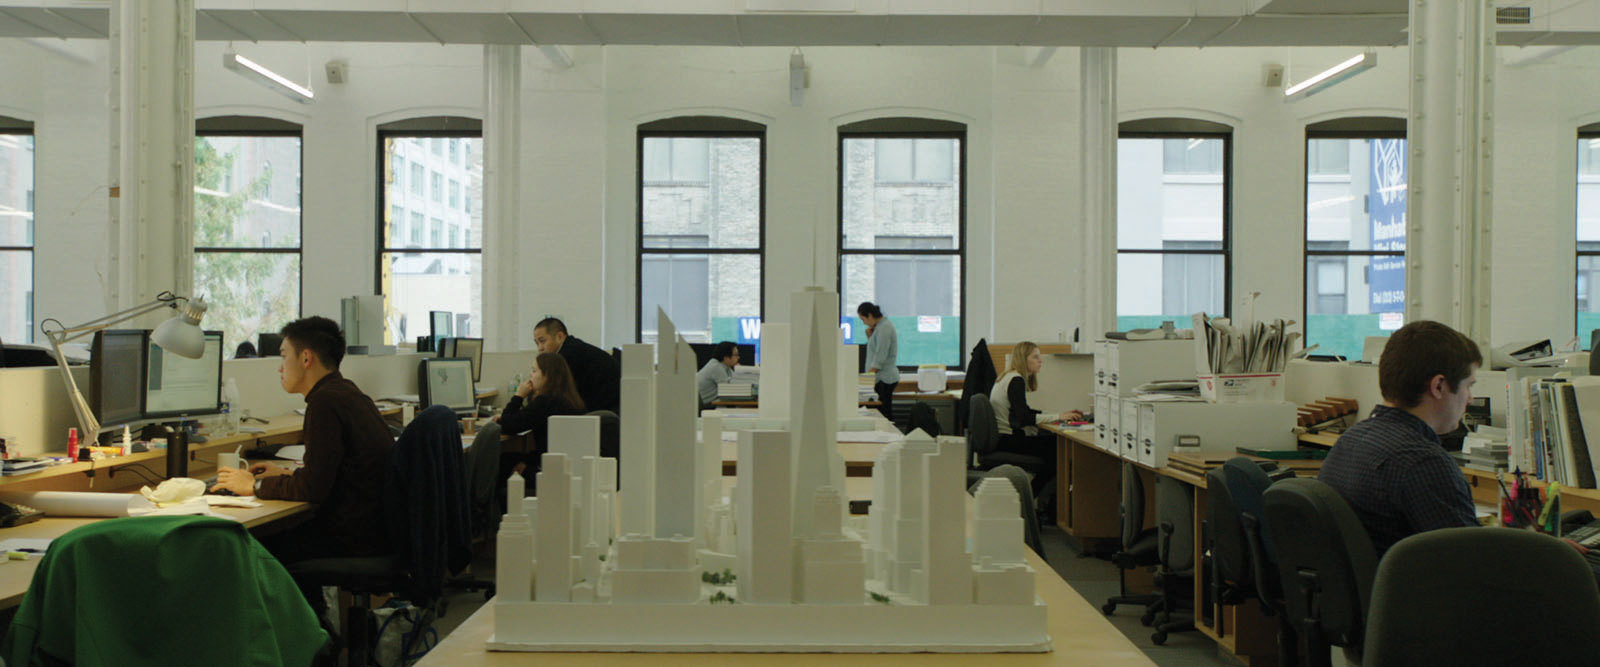 A journey through the architectural offices of New York looking at the production of architecture...